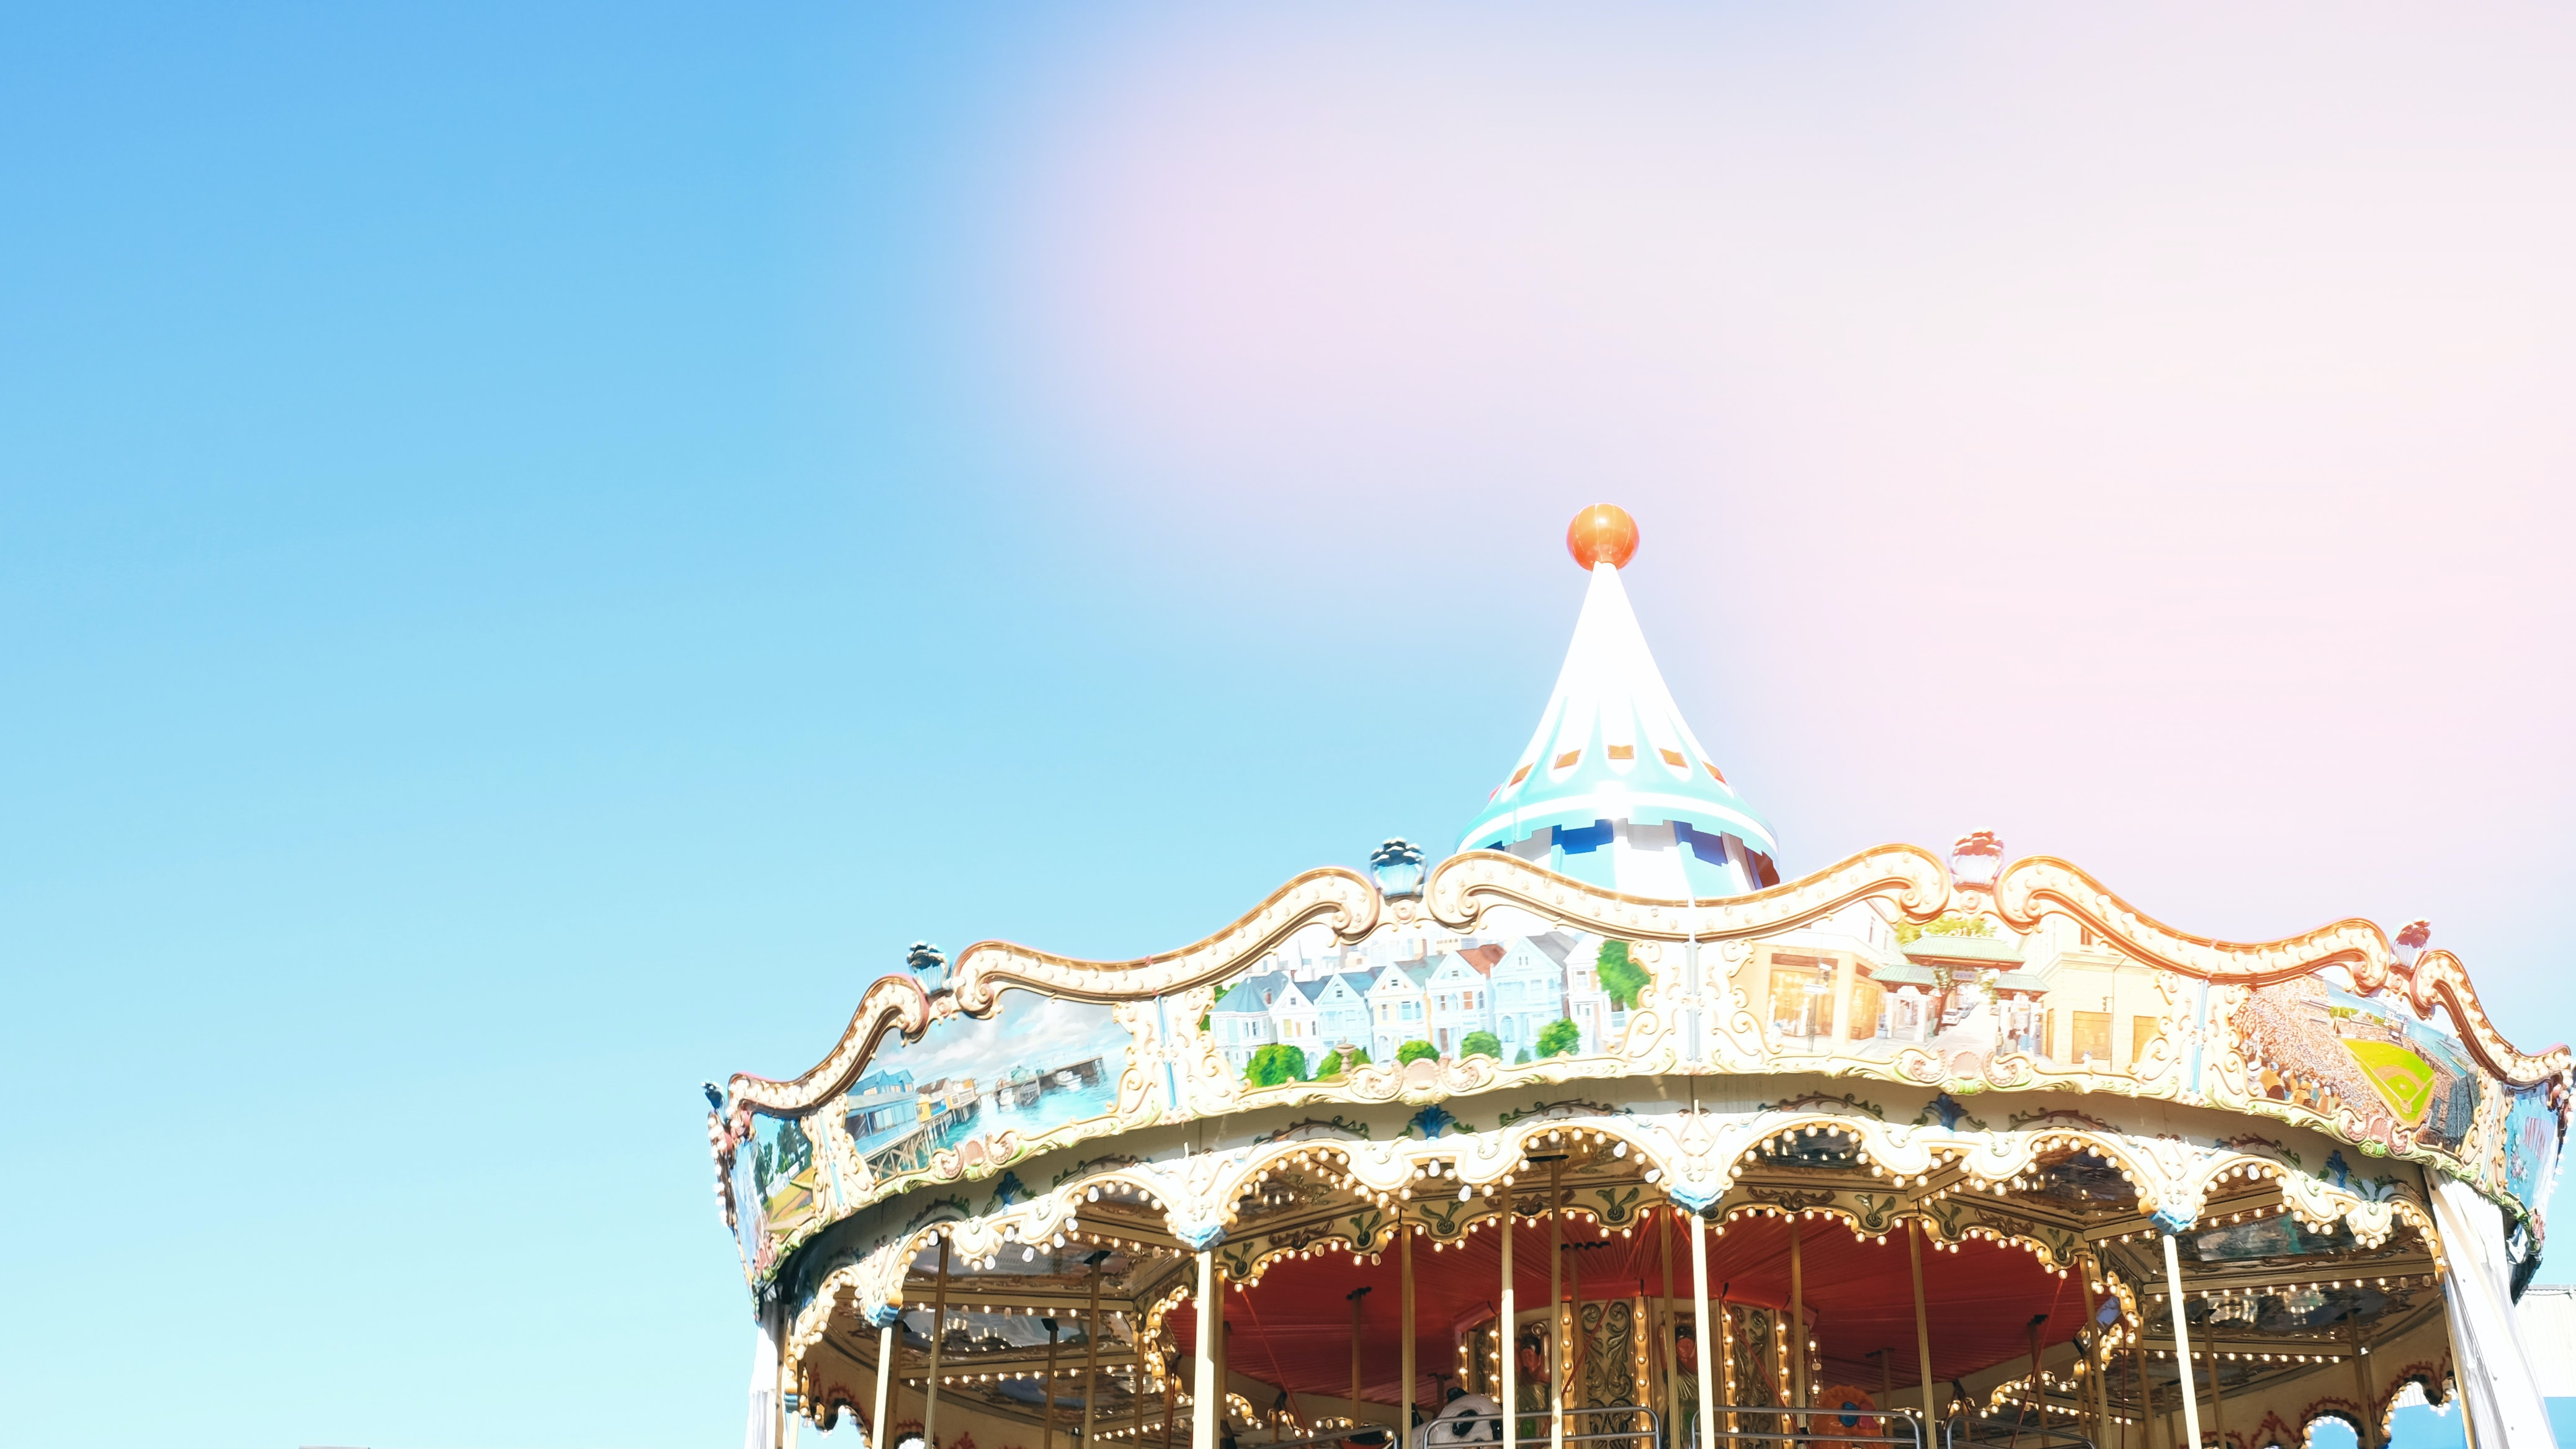 white and multicolored horse carousel at daytime